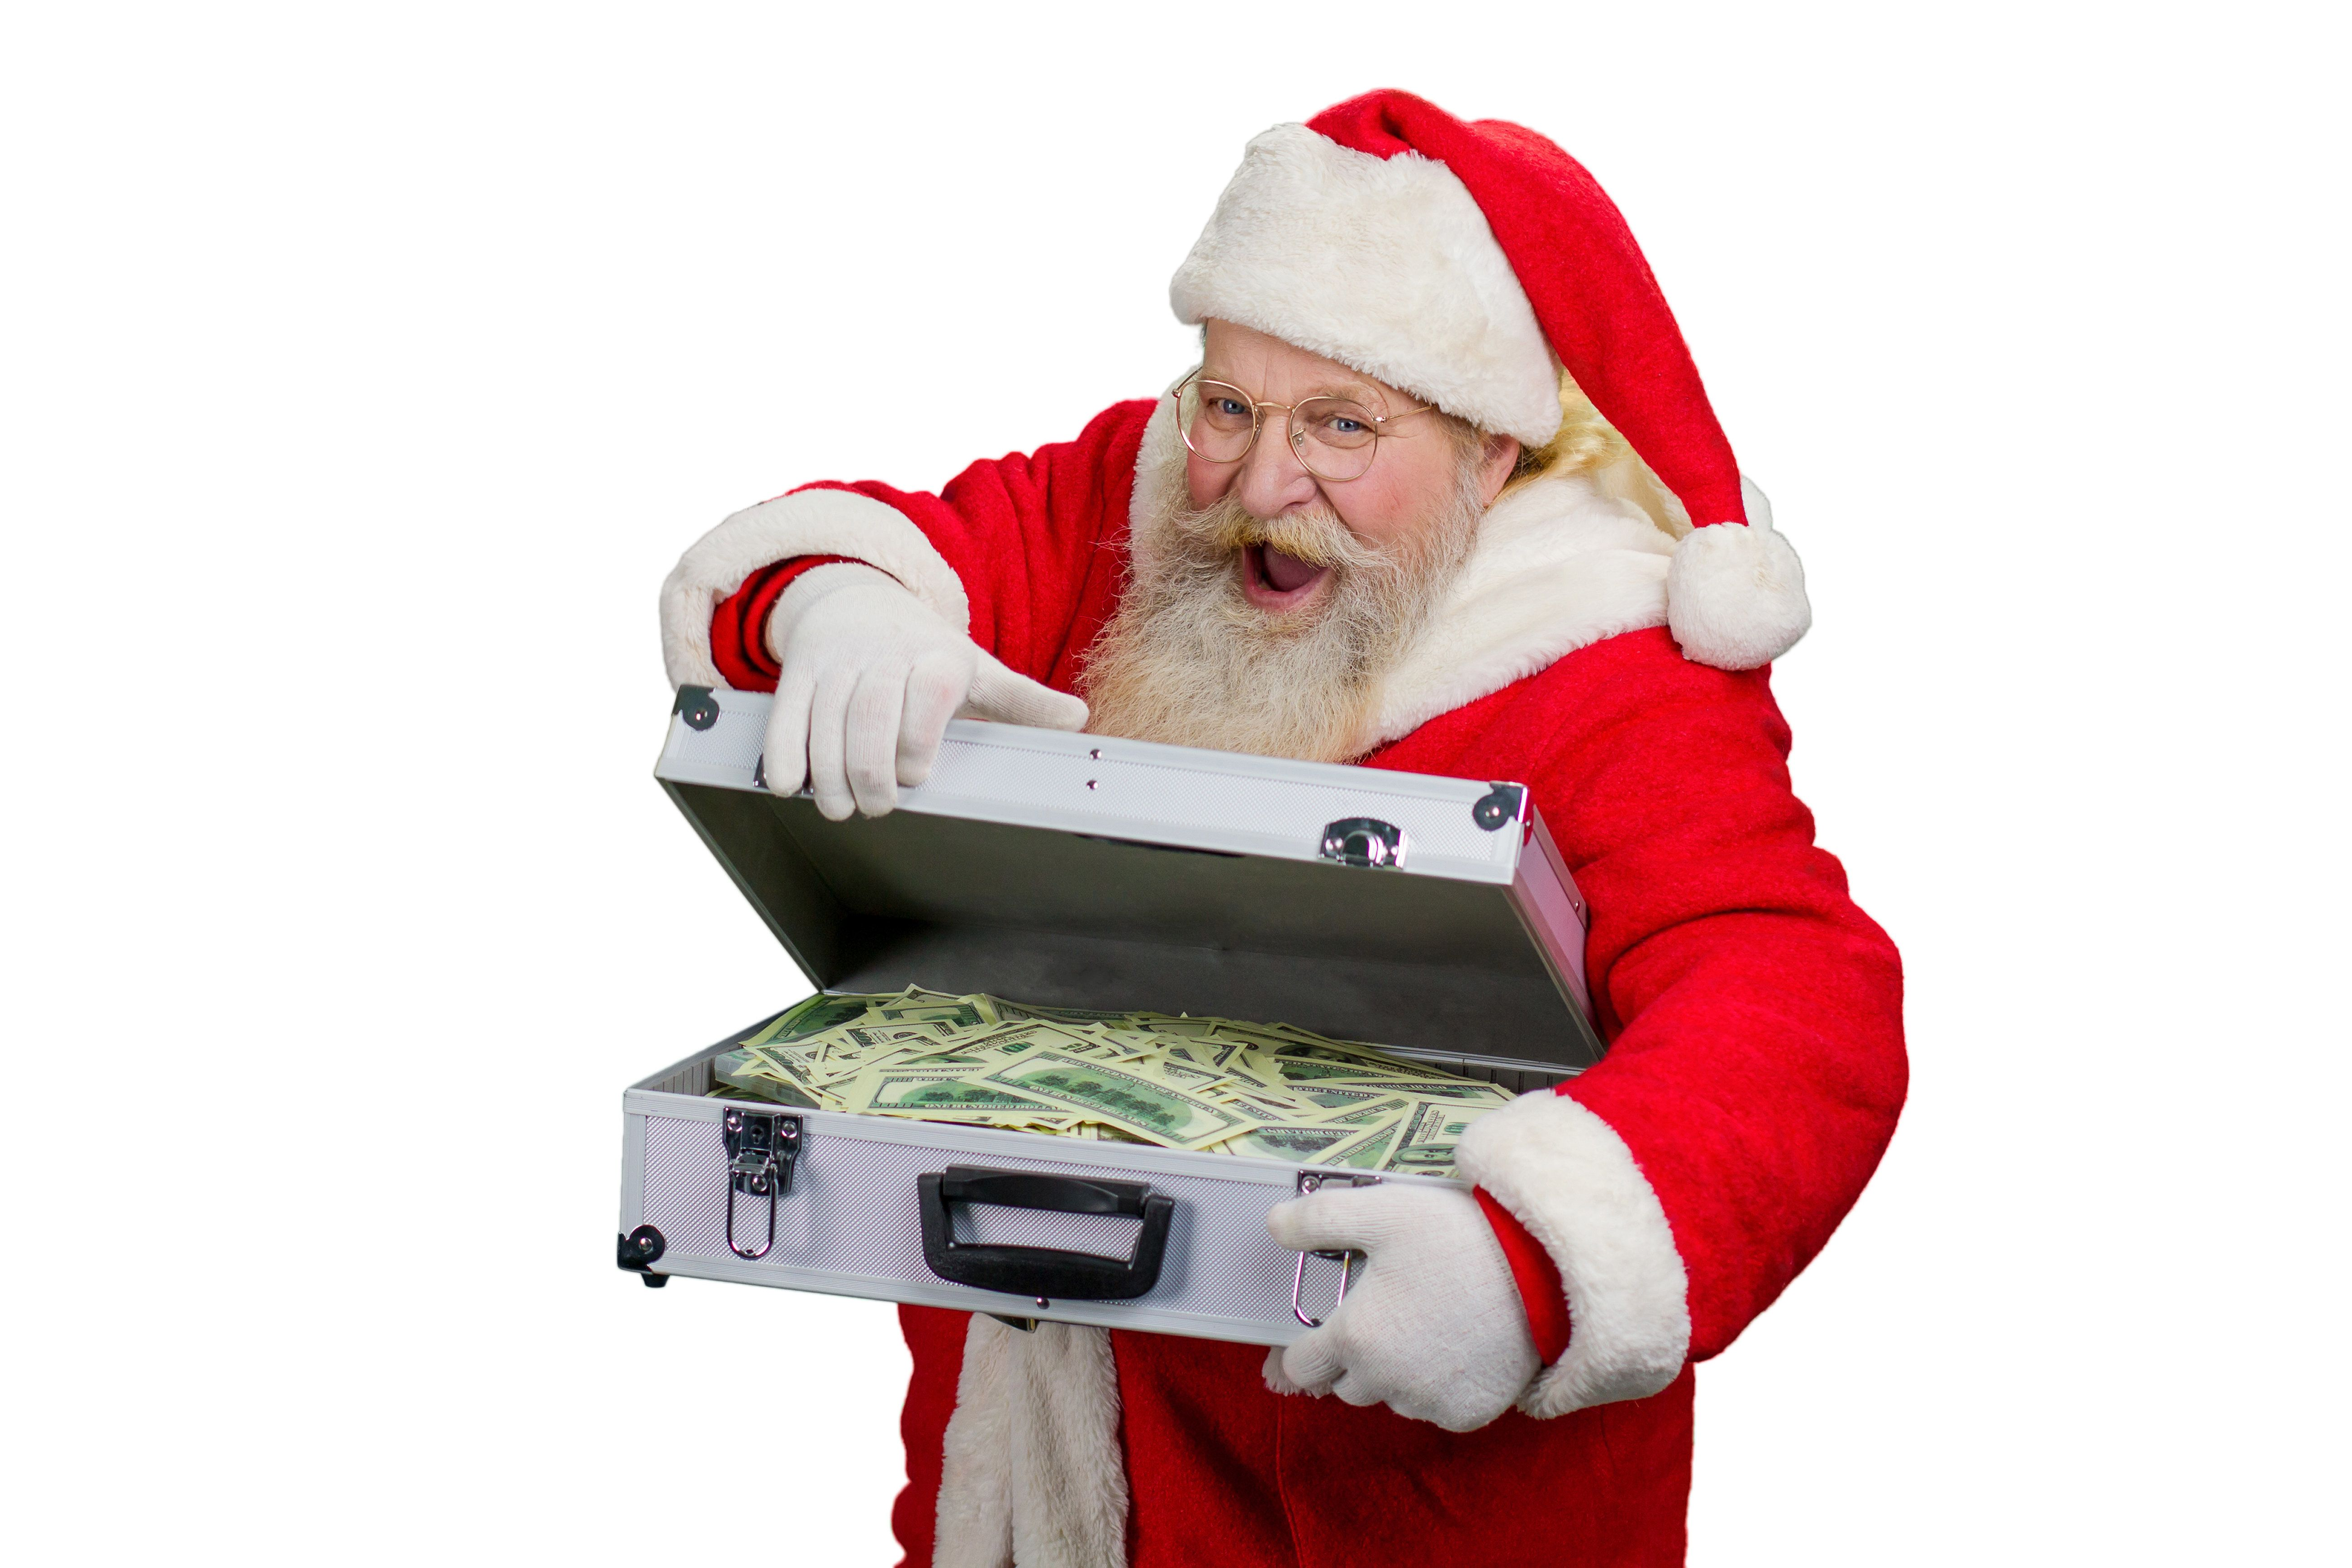 Santa Claus opening suitcase with money. Funny Santa Claus holding briefcase with hundred of dolars, isolated on white background.